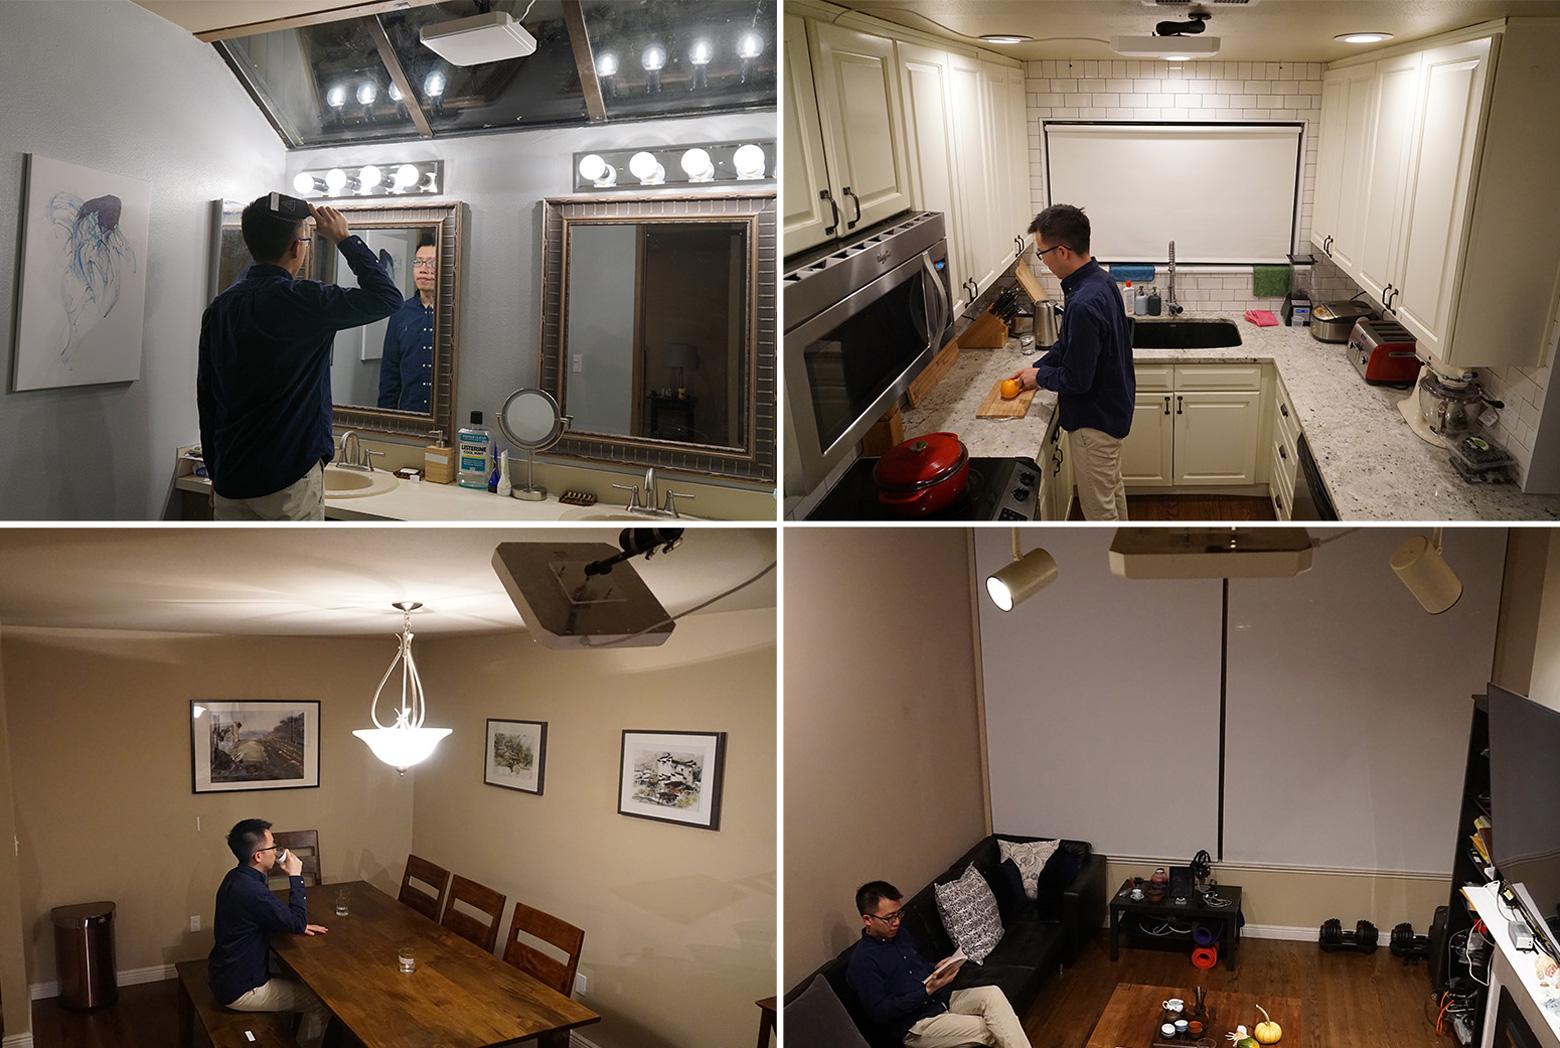 4 photos of a man doing tasks inside an apartment